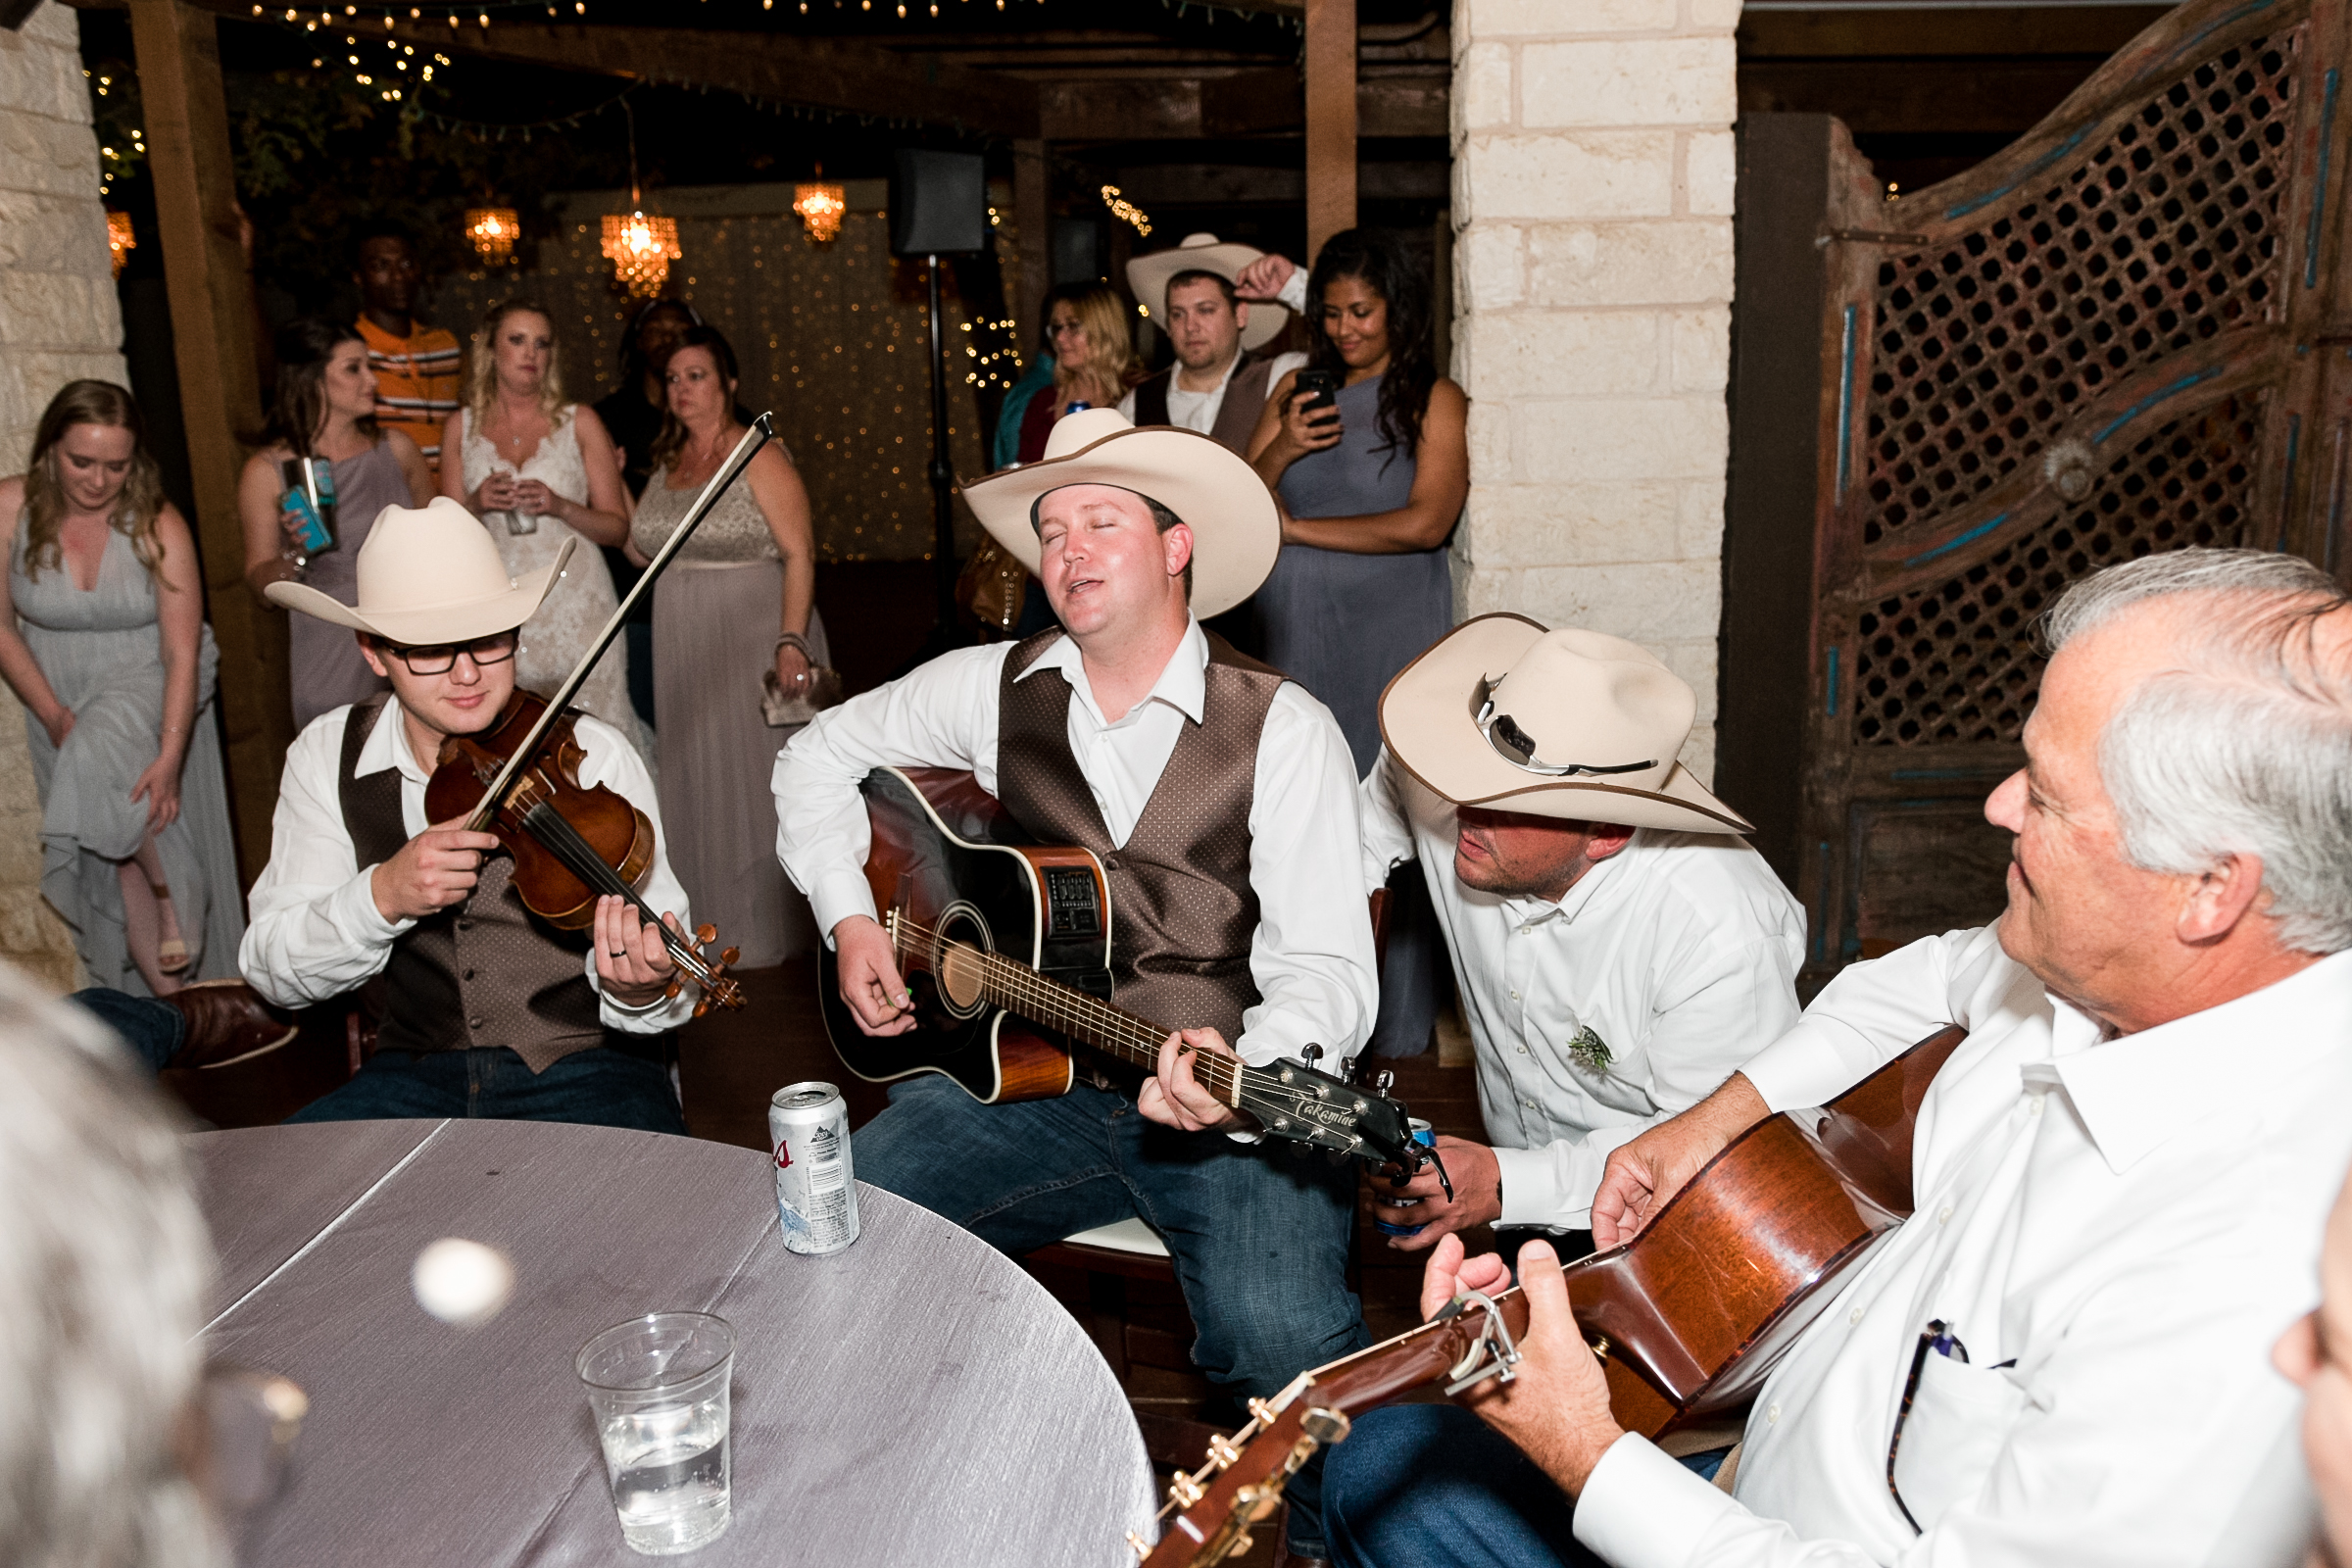 A group of men play live music on guitars at a wedding reception in Georgetown, Texas